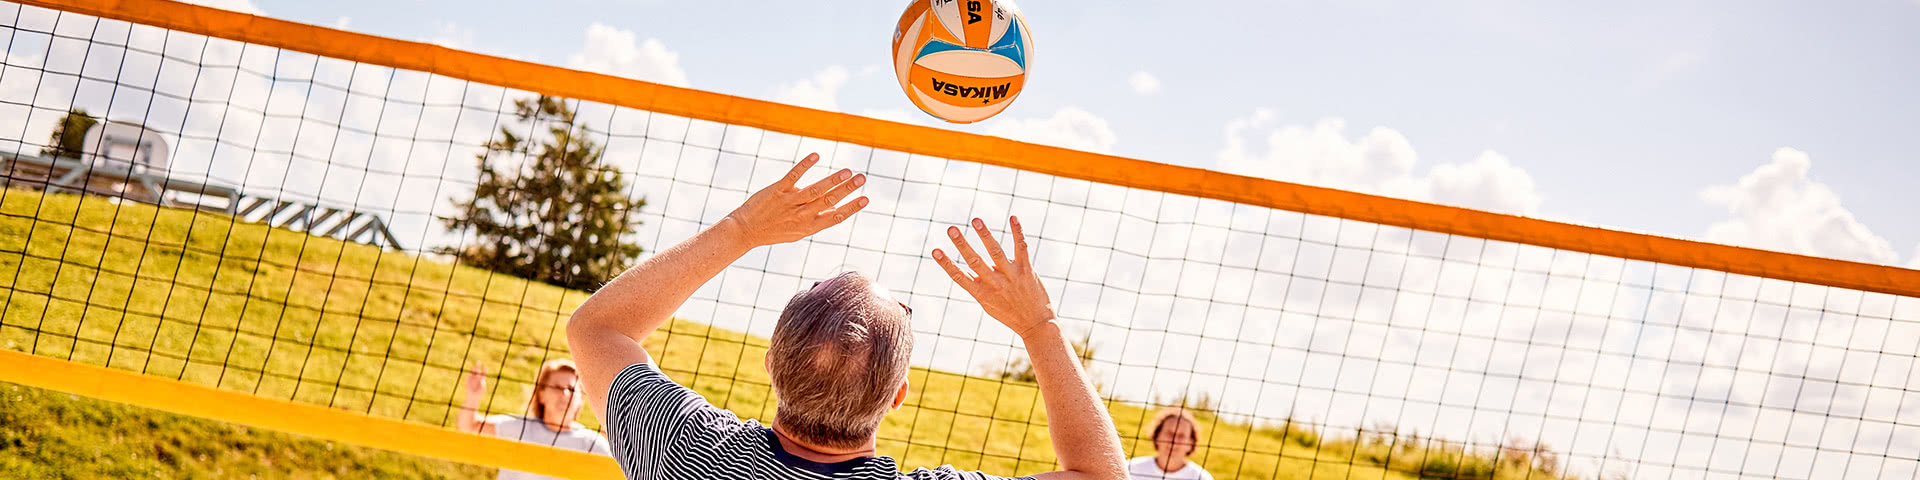 Beachvolleyball spielen in Neuharlingersiel